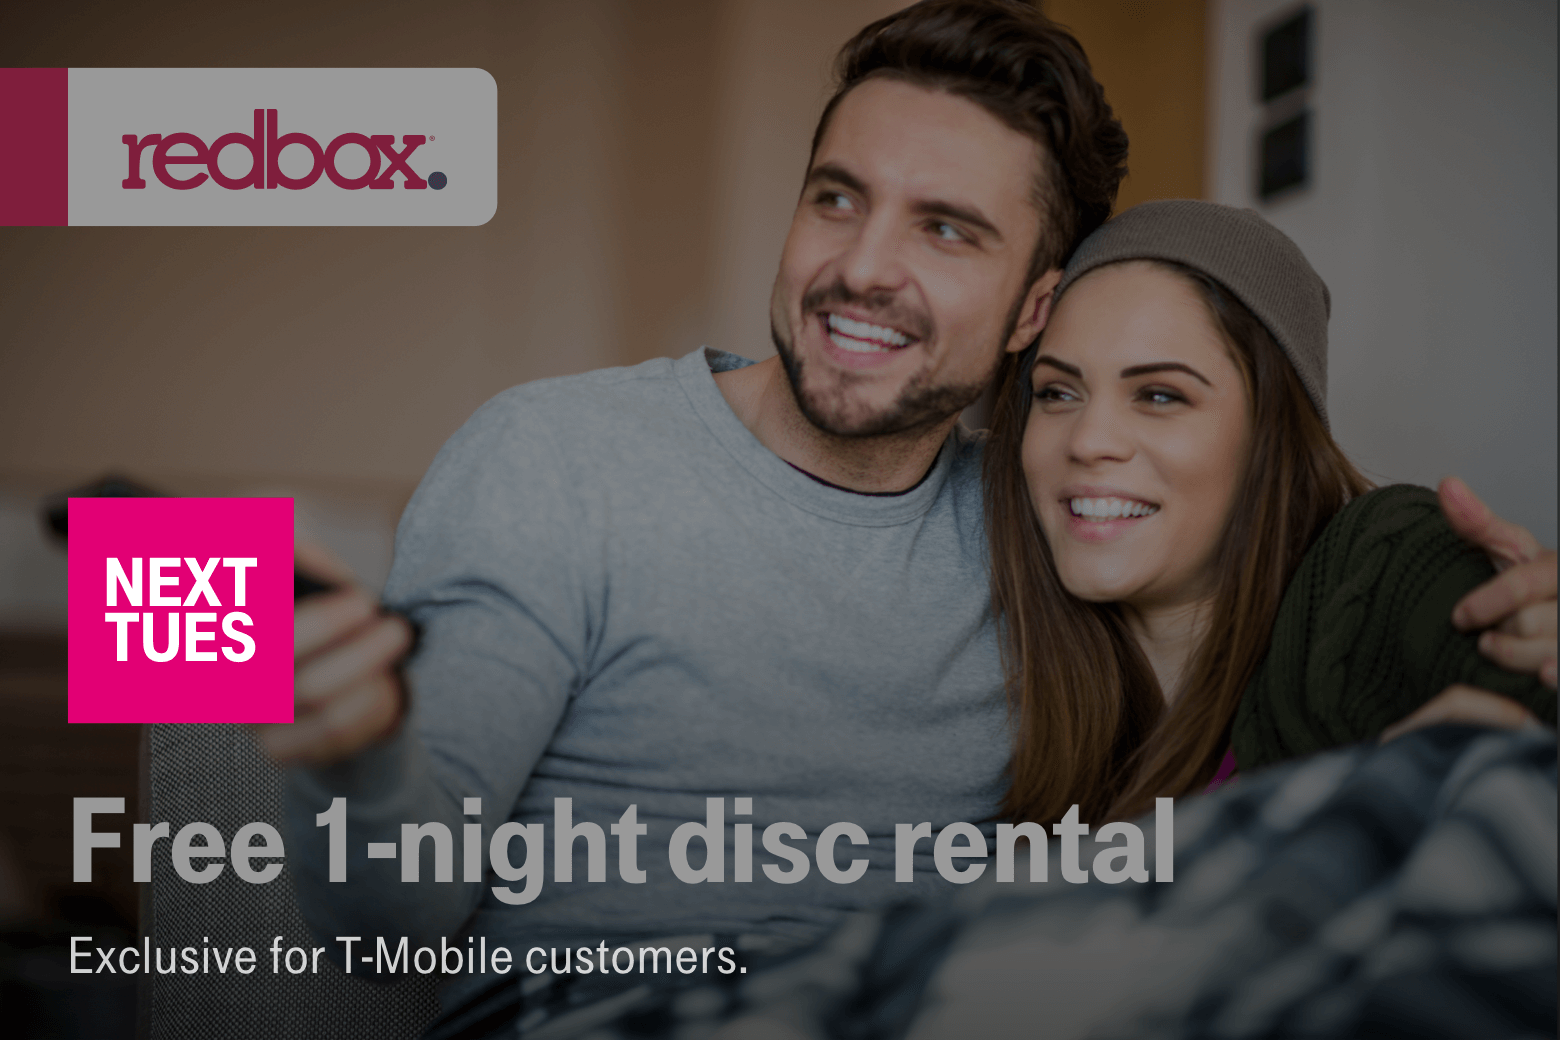 Redbox. Free 1-night disc rental. Next Tues. Exclusive for T-Mobile customers.